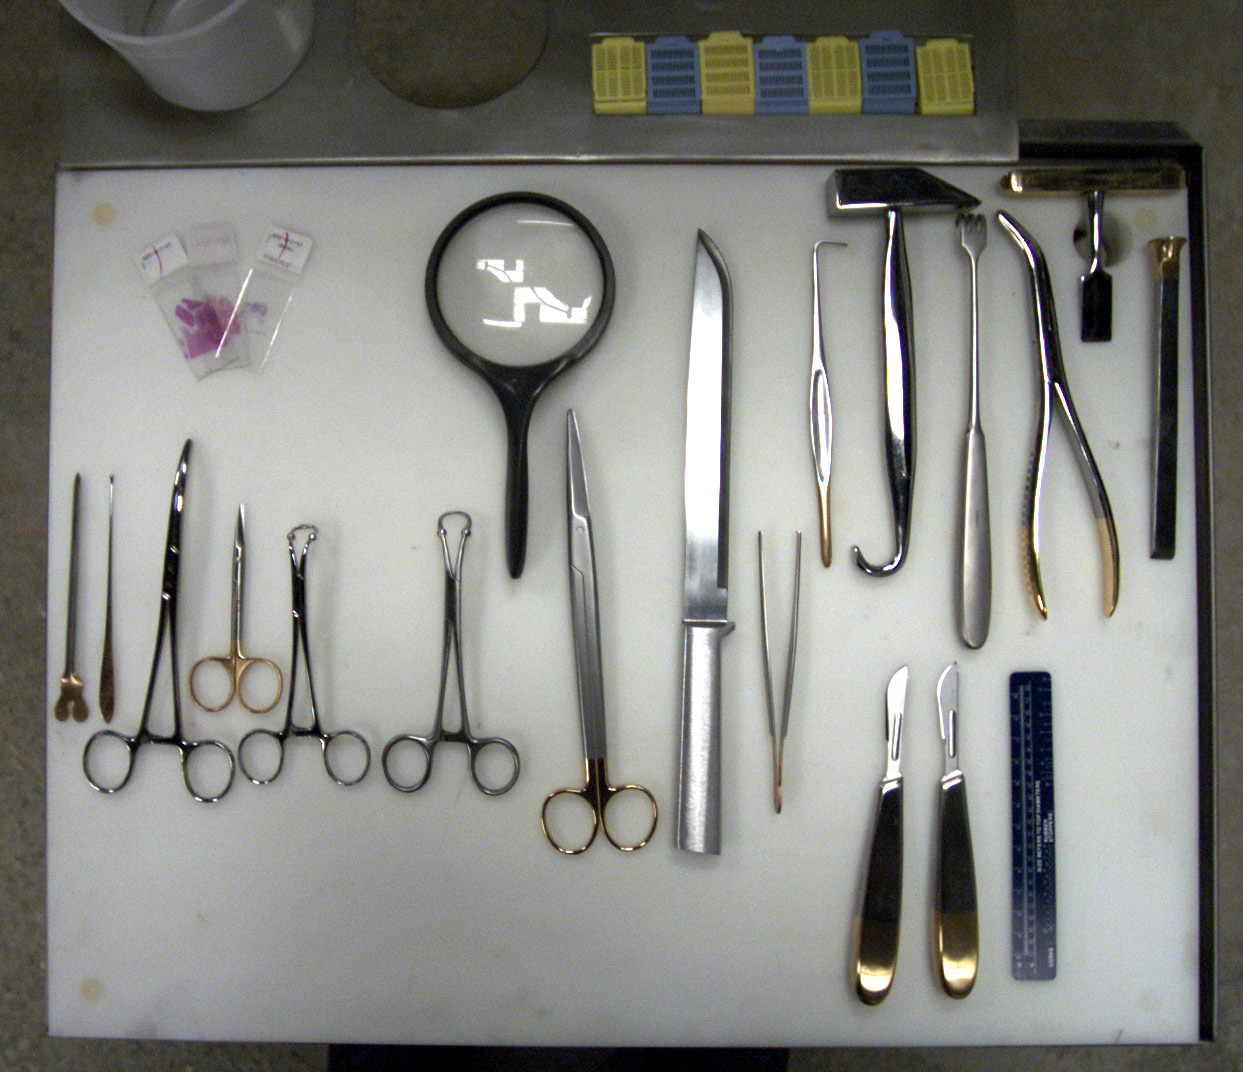 Some of the tools used to perform an autopsy.